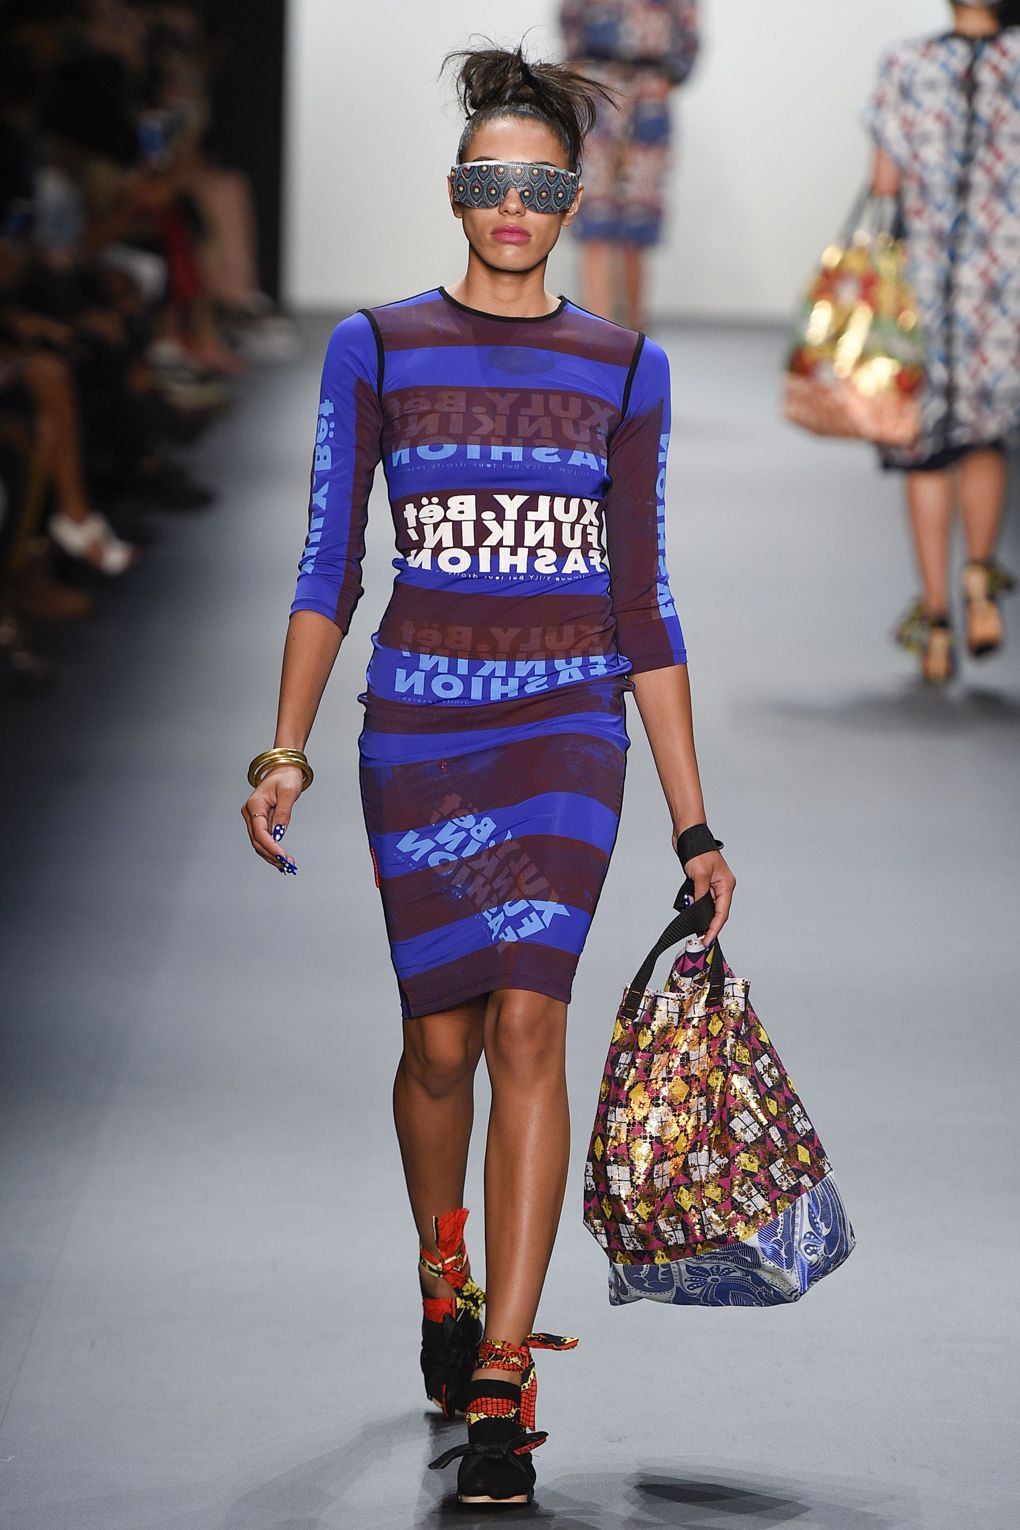 fashion-week-xuly-be%cc%88t-xuly-be%cc%88t-sprigsummer-2016-ready-to-wear-collection-15